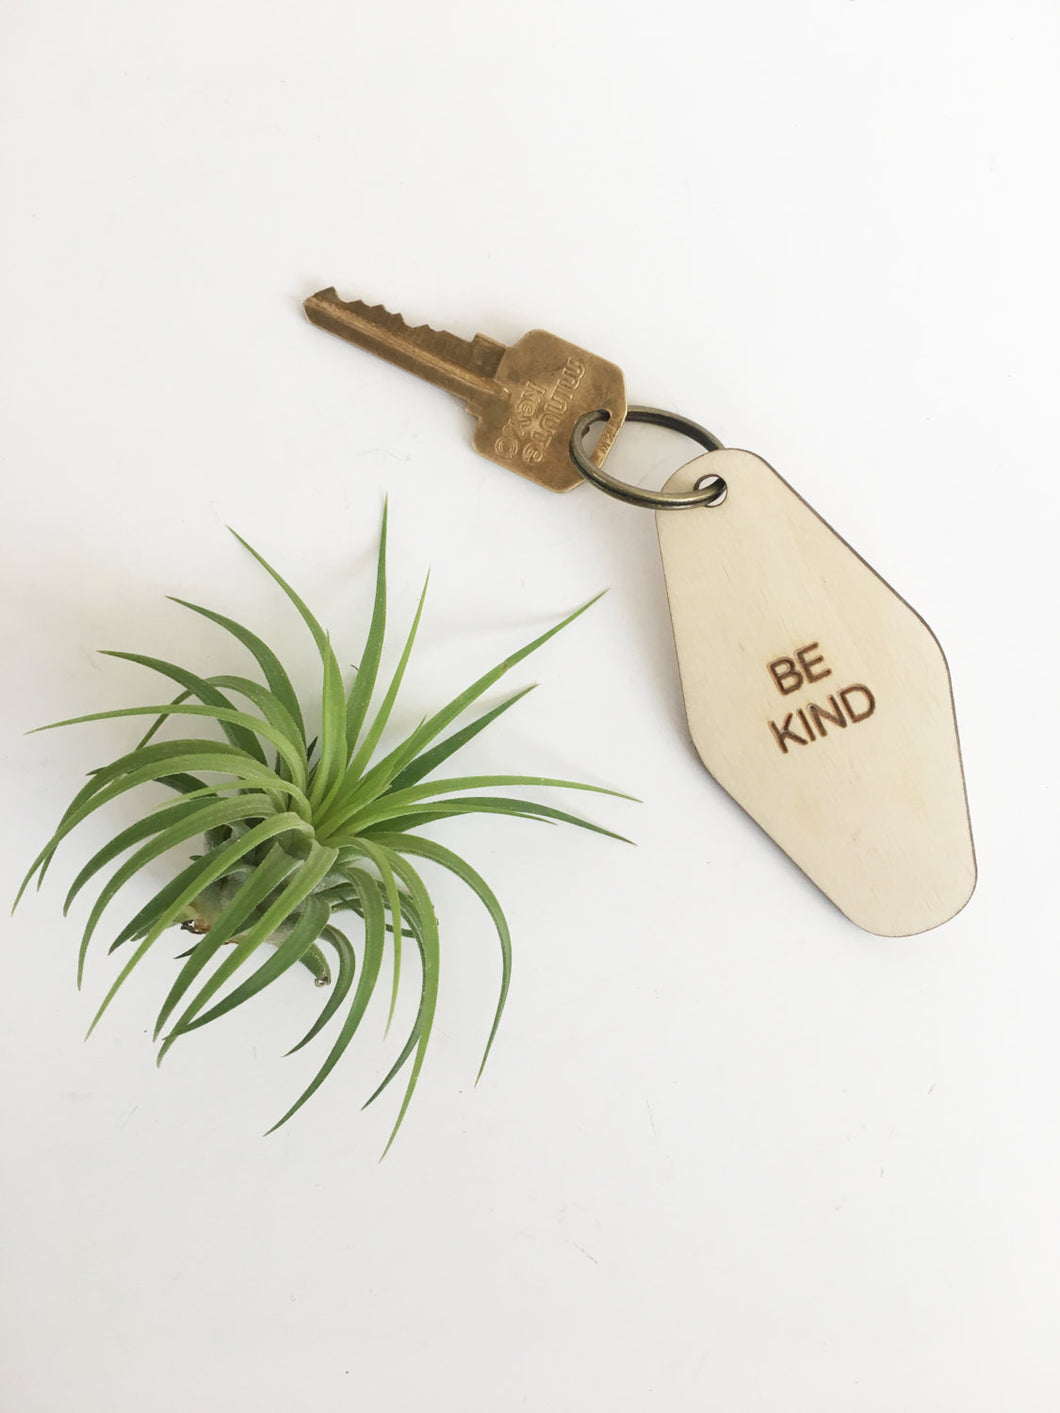 retro key fob >> wooden key chain >> be kind